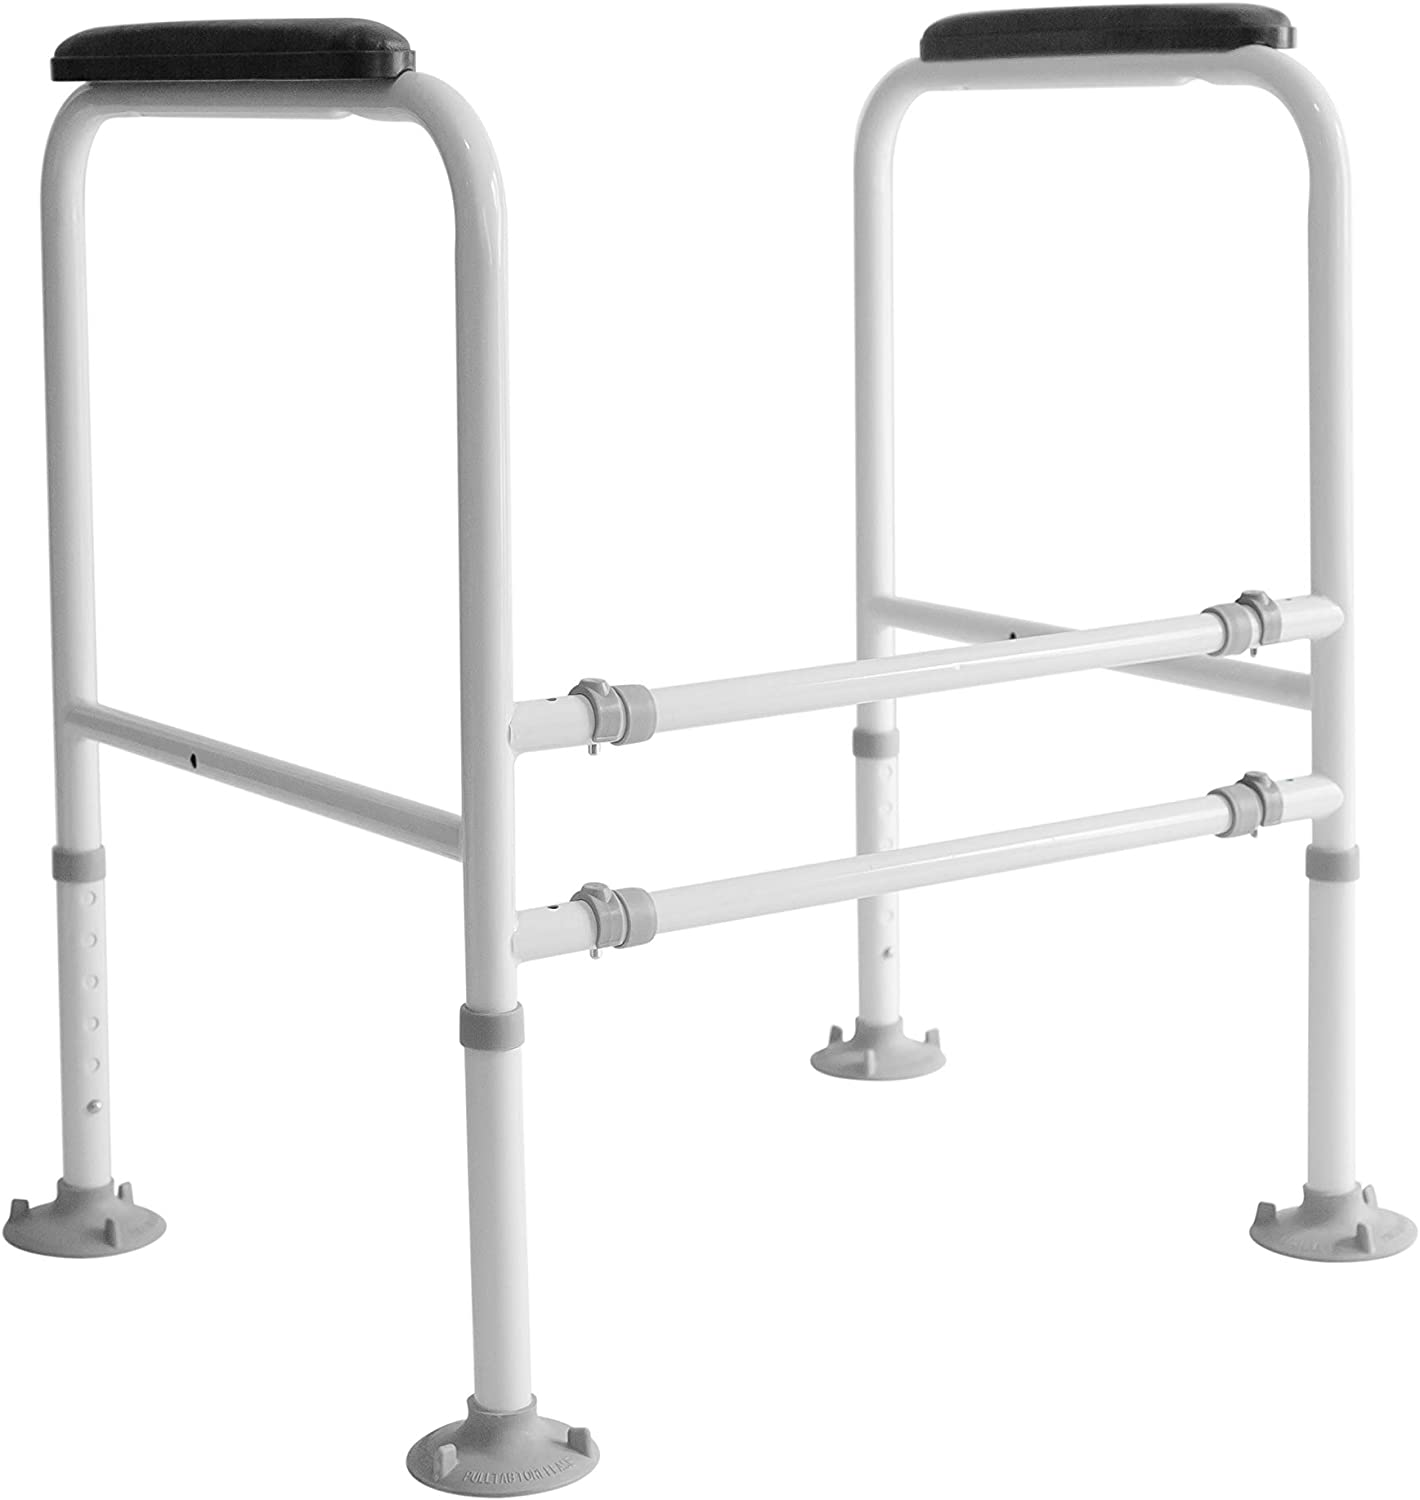 Delaine's Toilet Safety Rail - Offers Safety and Dignity for Elderly, Handicapped and Surgery Patients - Freestanding - Large Anti-Slip Foot Pads: Health & Personal Care